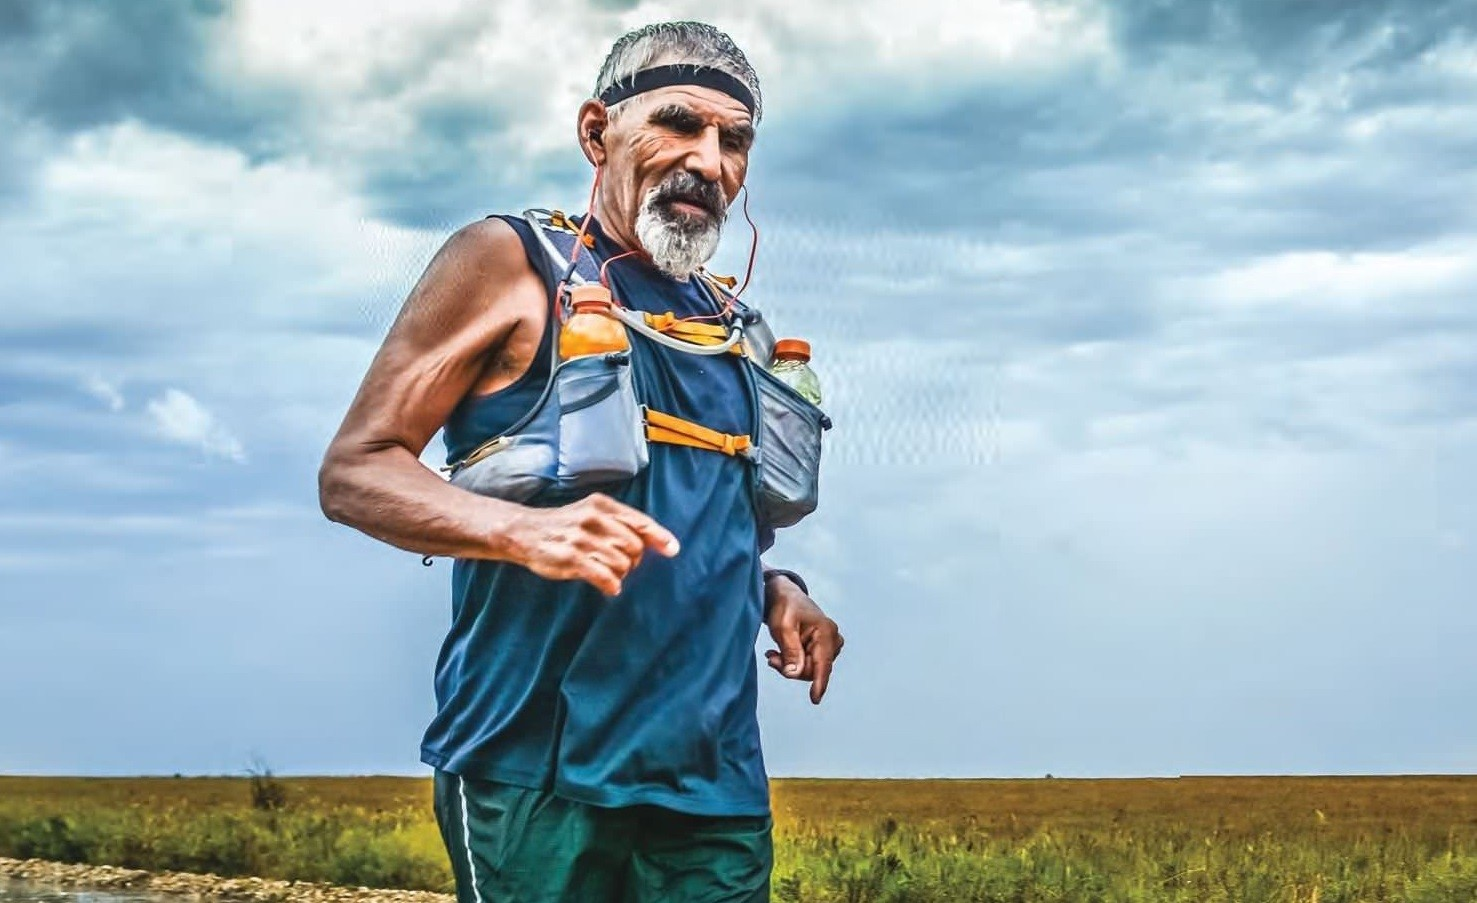 The king of the trails, Rene Villalobos is a 59-year-old plumber with 350 ultras under his belt